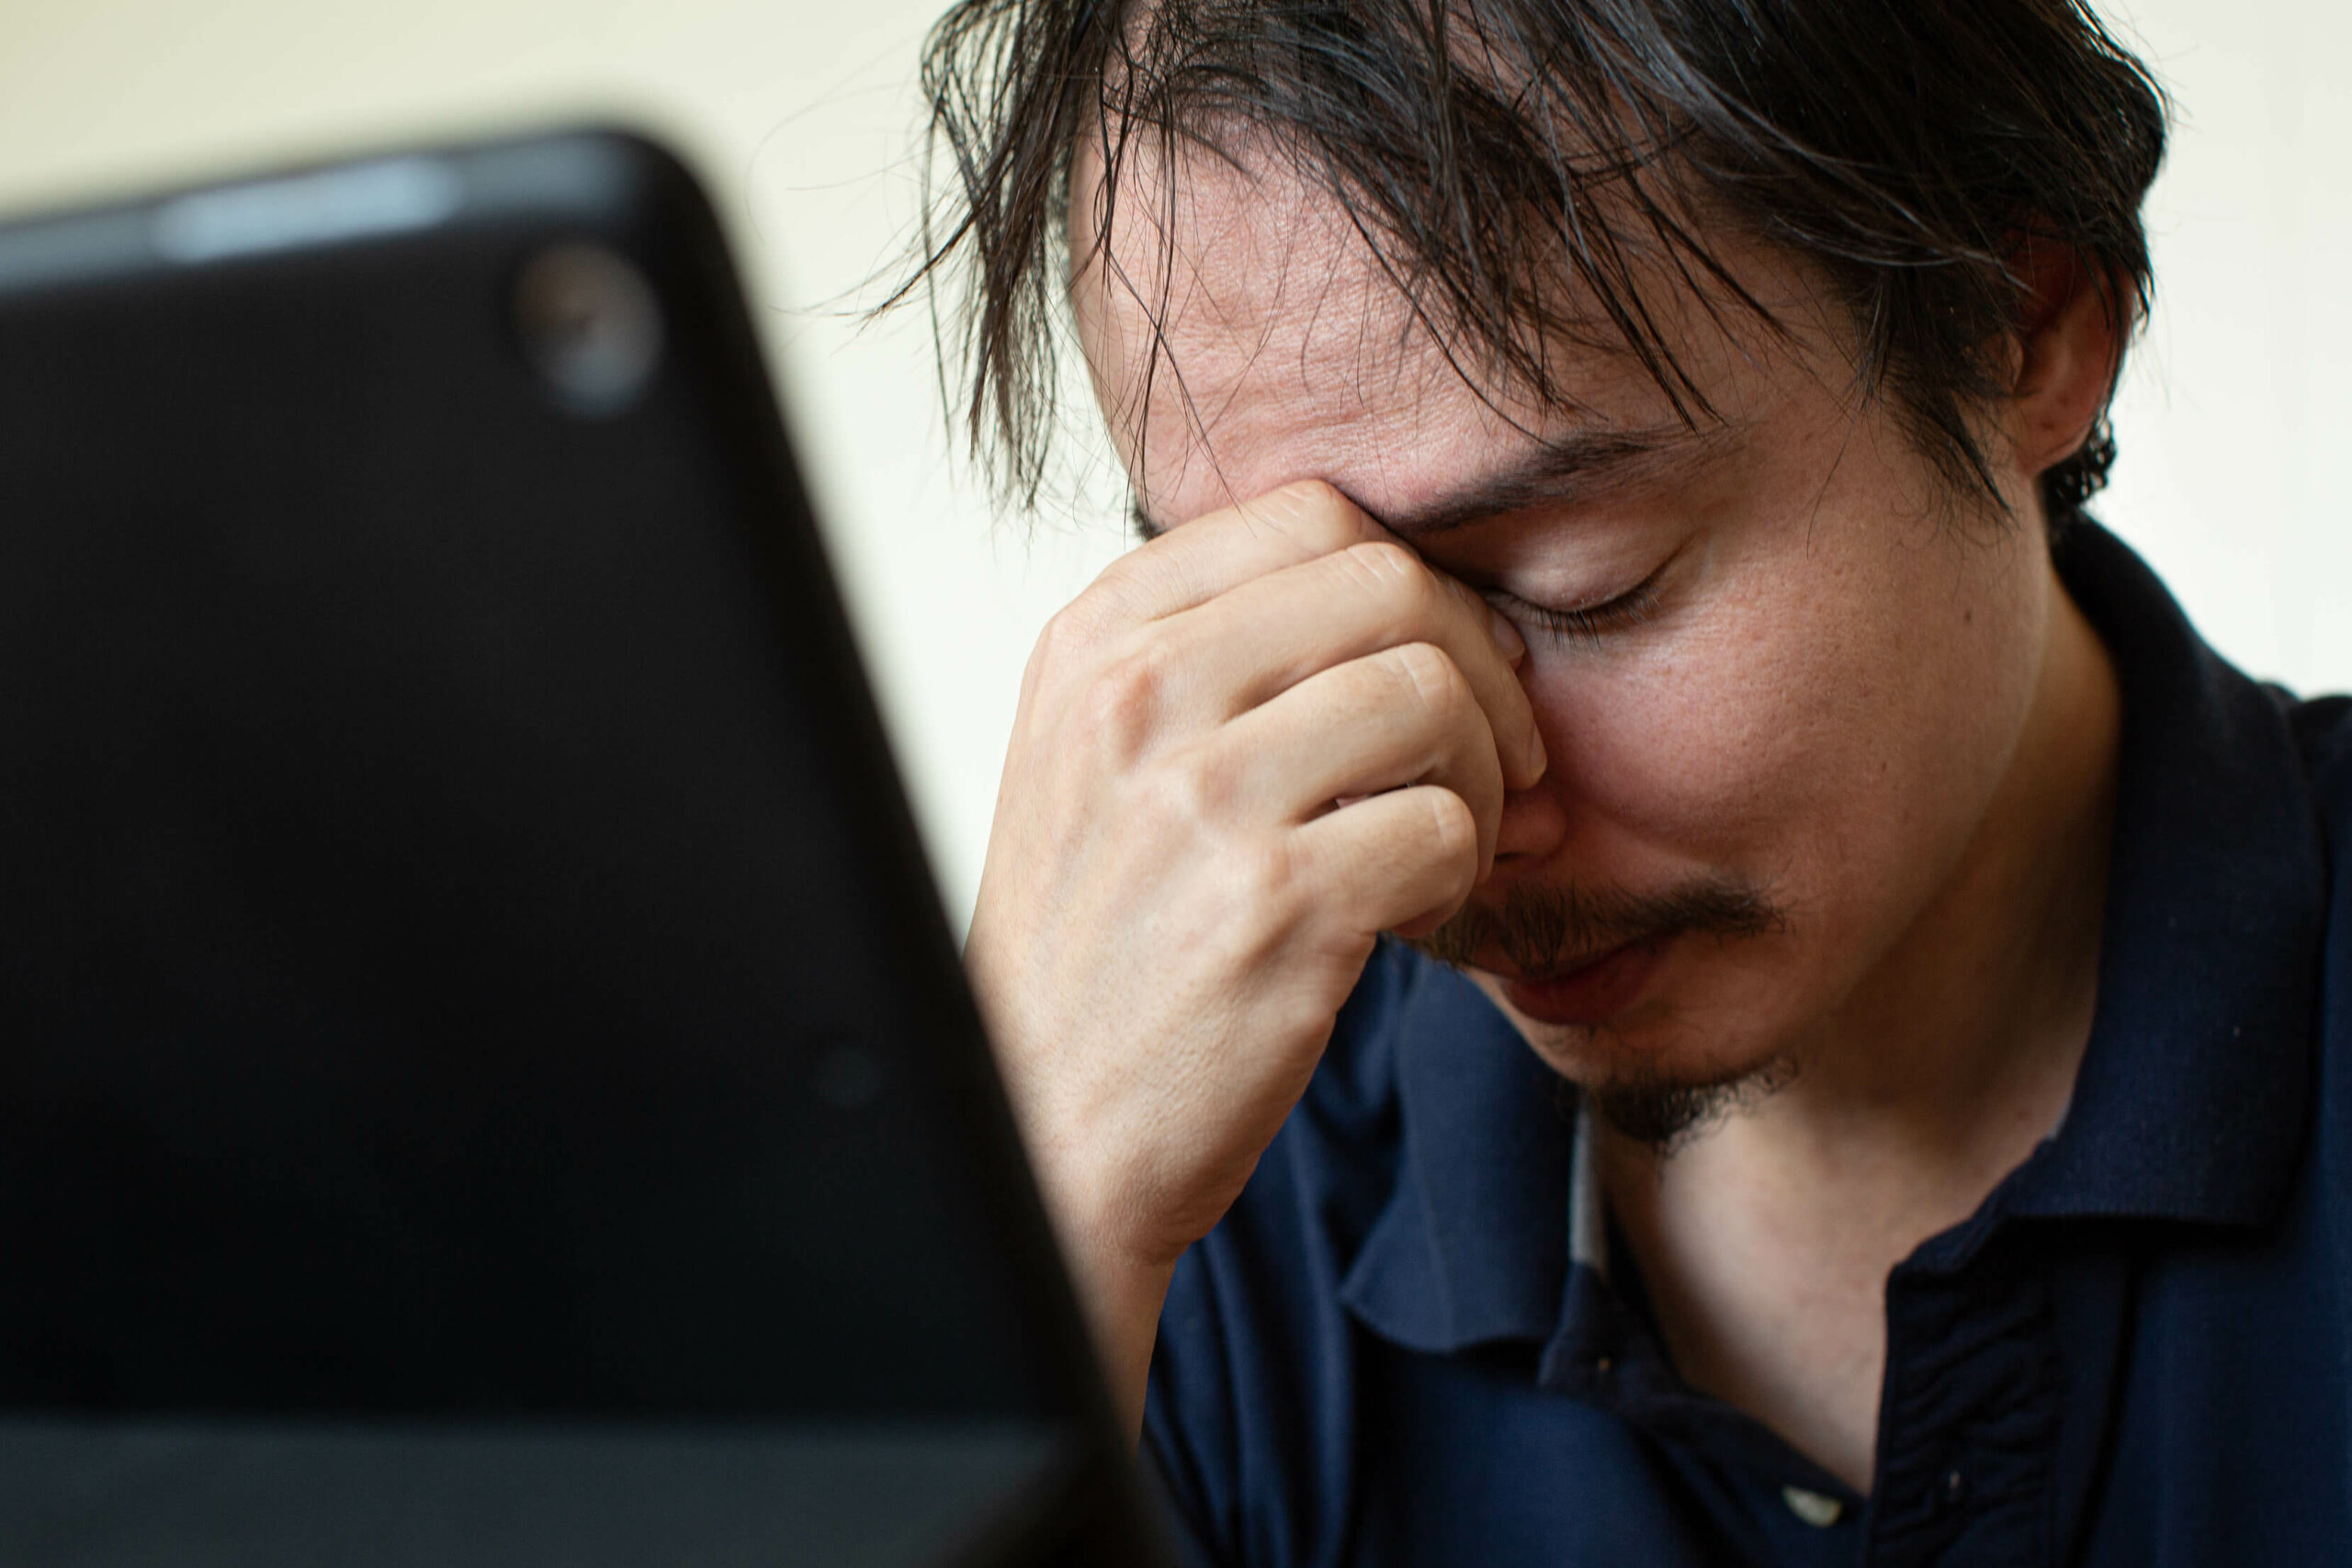 An electronic device next to a man, who is holding the bridge of his nose with one hand and looking stressed out.